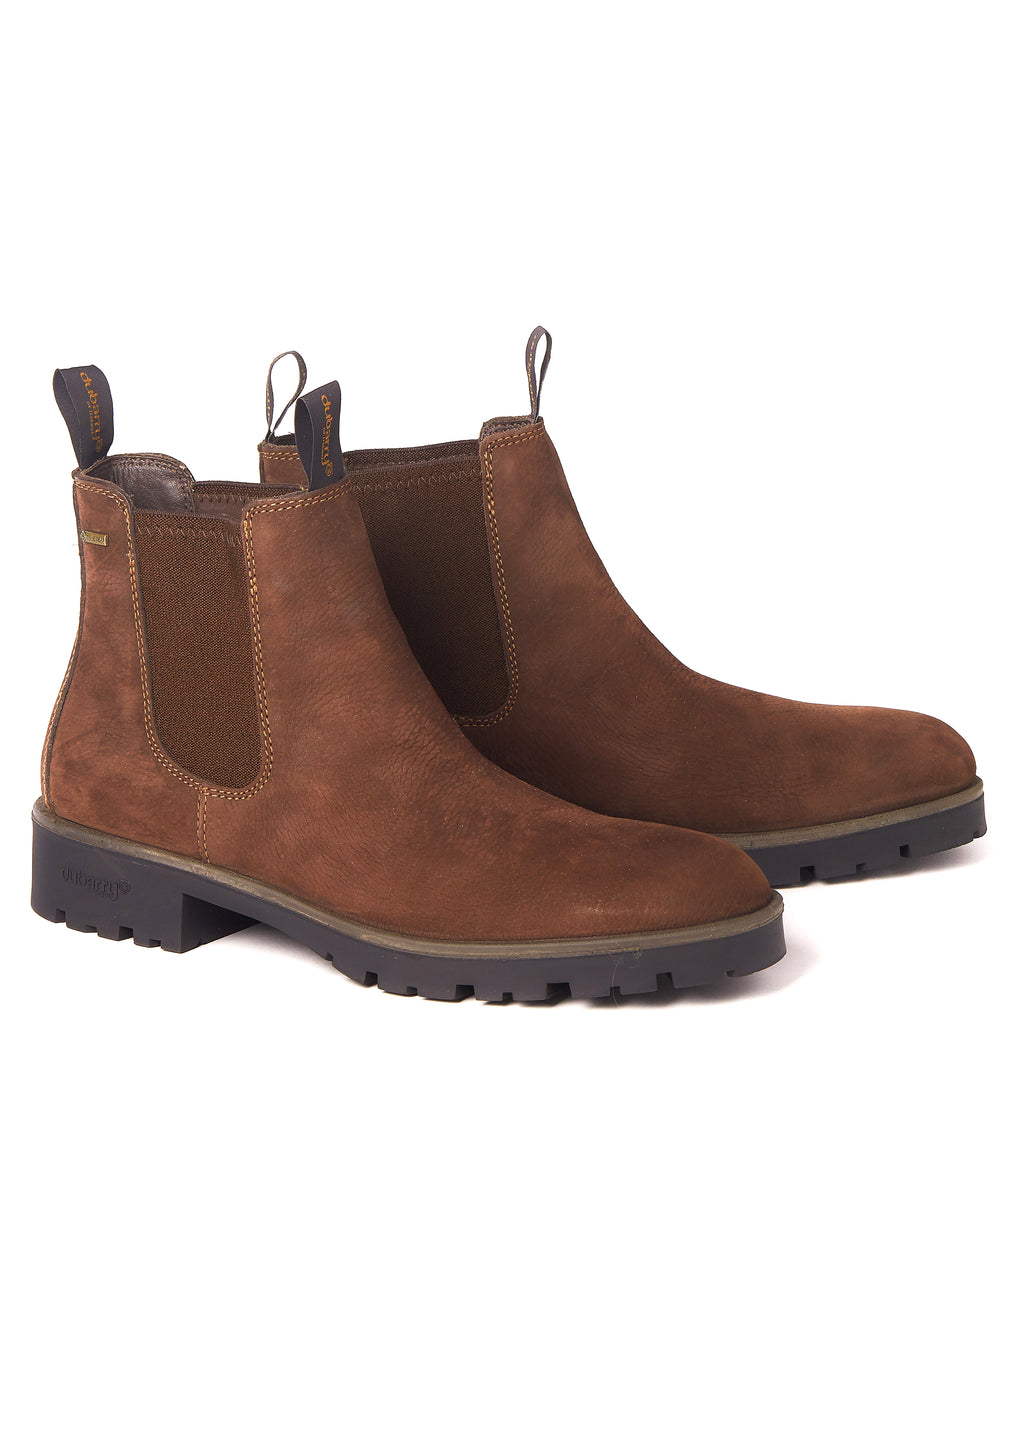 Dubarry Antrim Country Boot